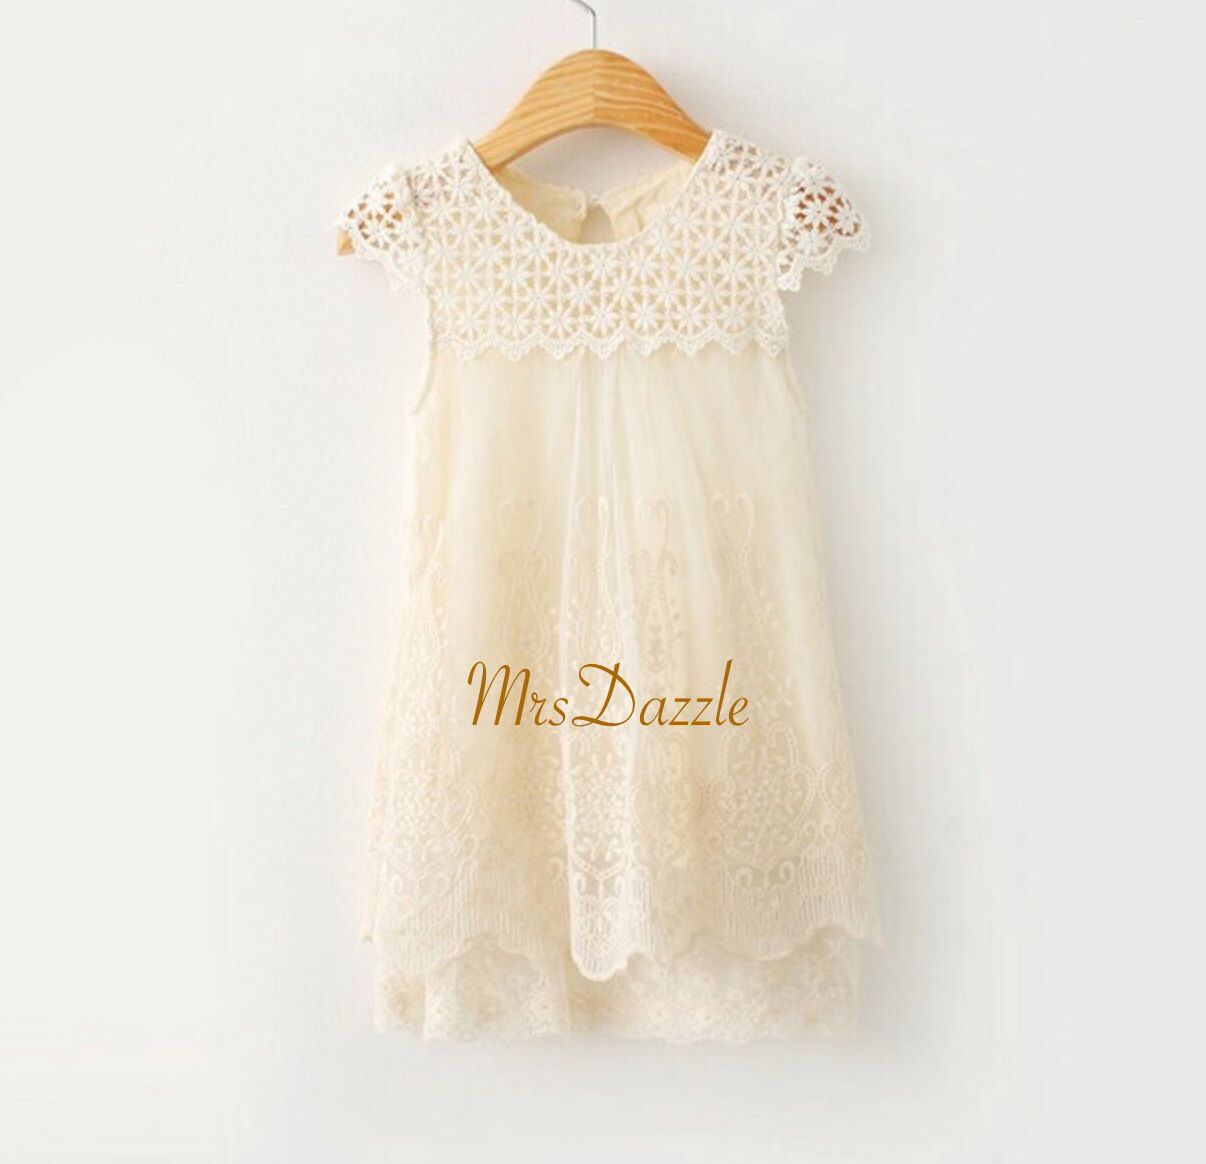 Girls Ivory Lace Dress,Ivory Flower Girl Dress,Flower Girl Lace Dress, Crochet lace dress,Girls Vintage Dress,Rustic Dress,Girls Cream Dress by MrsDazzle on Etsy https://www.etsy.com/listing/233152429/girls-ivory-lace-dressivory-flower-girl